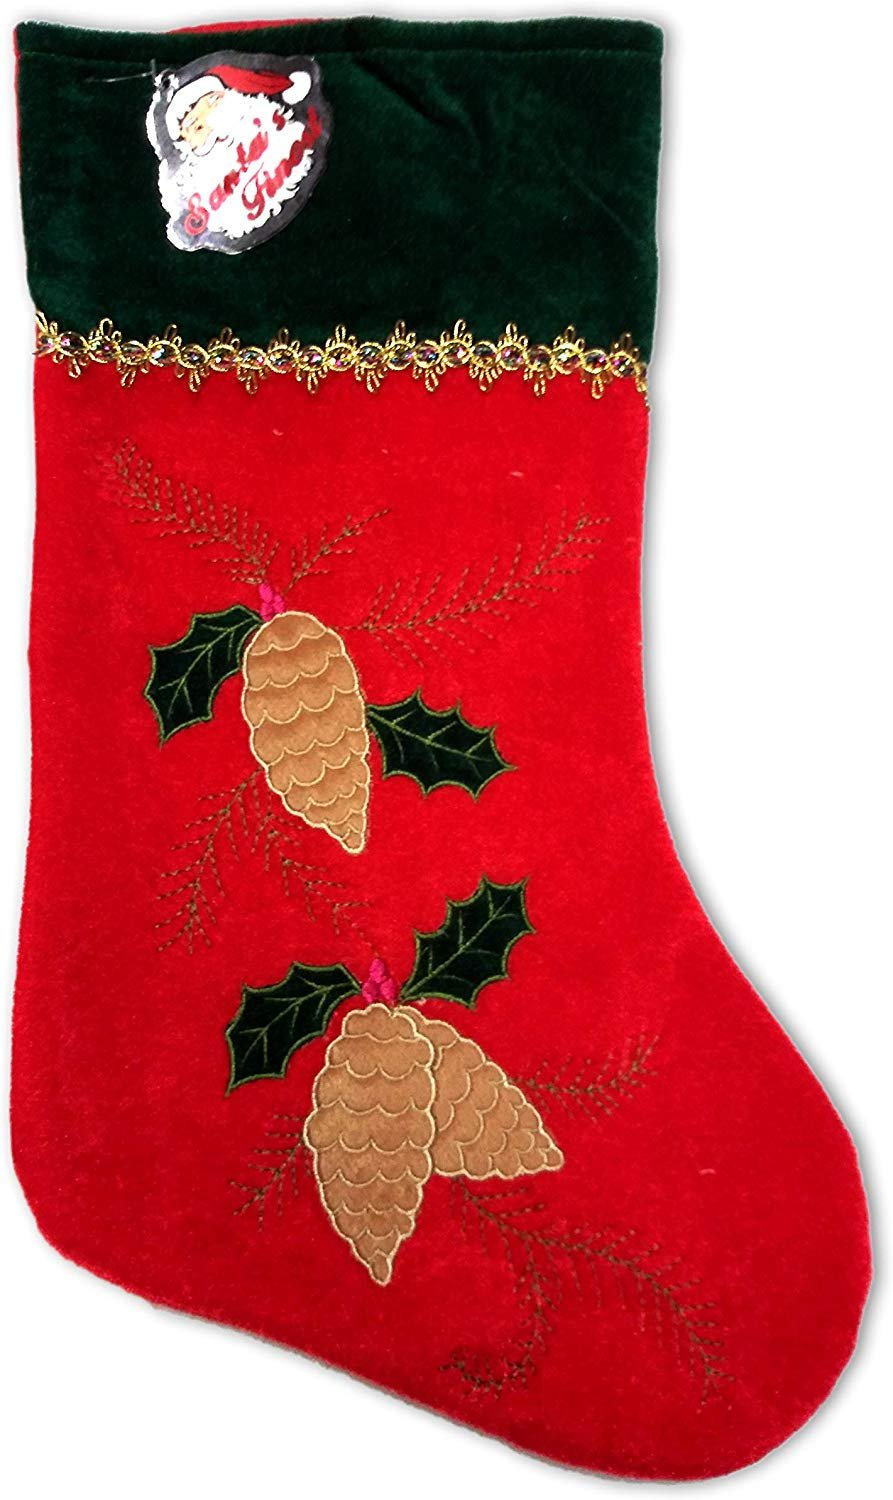 SANTA'S FINEST Christmas Stockings, 19 Inch (Edition #5)